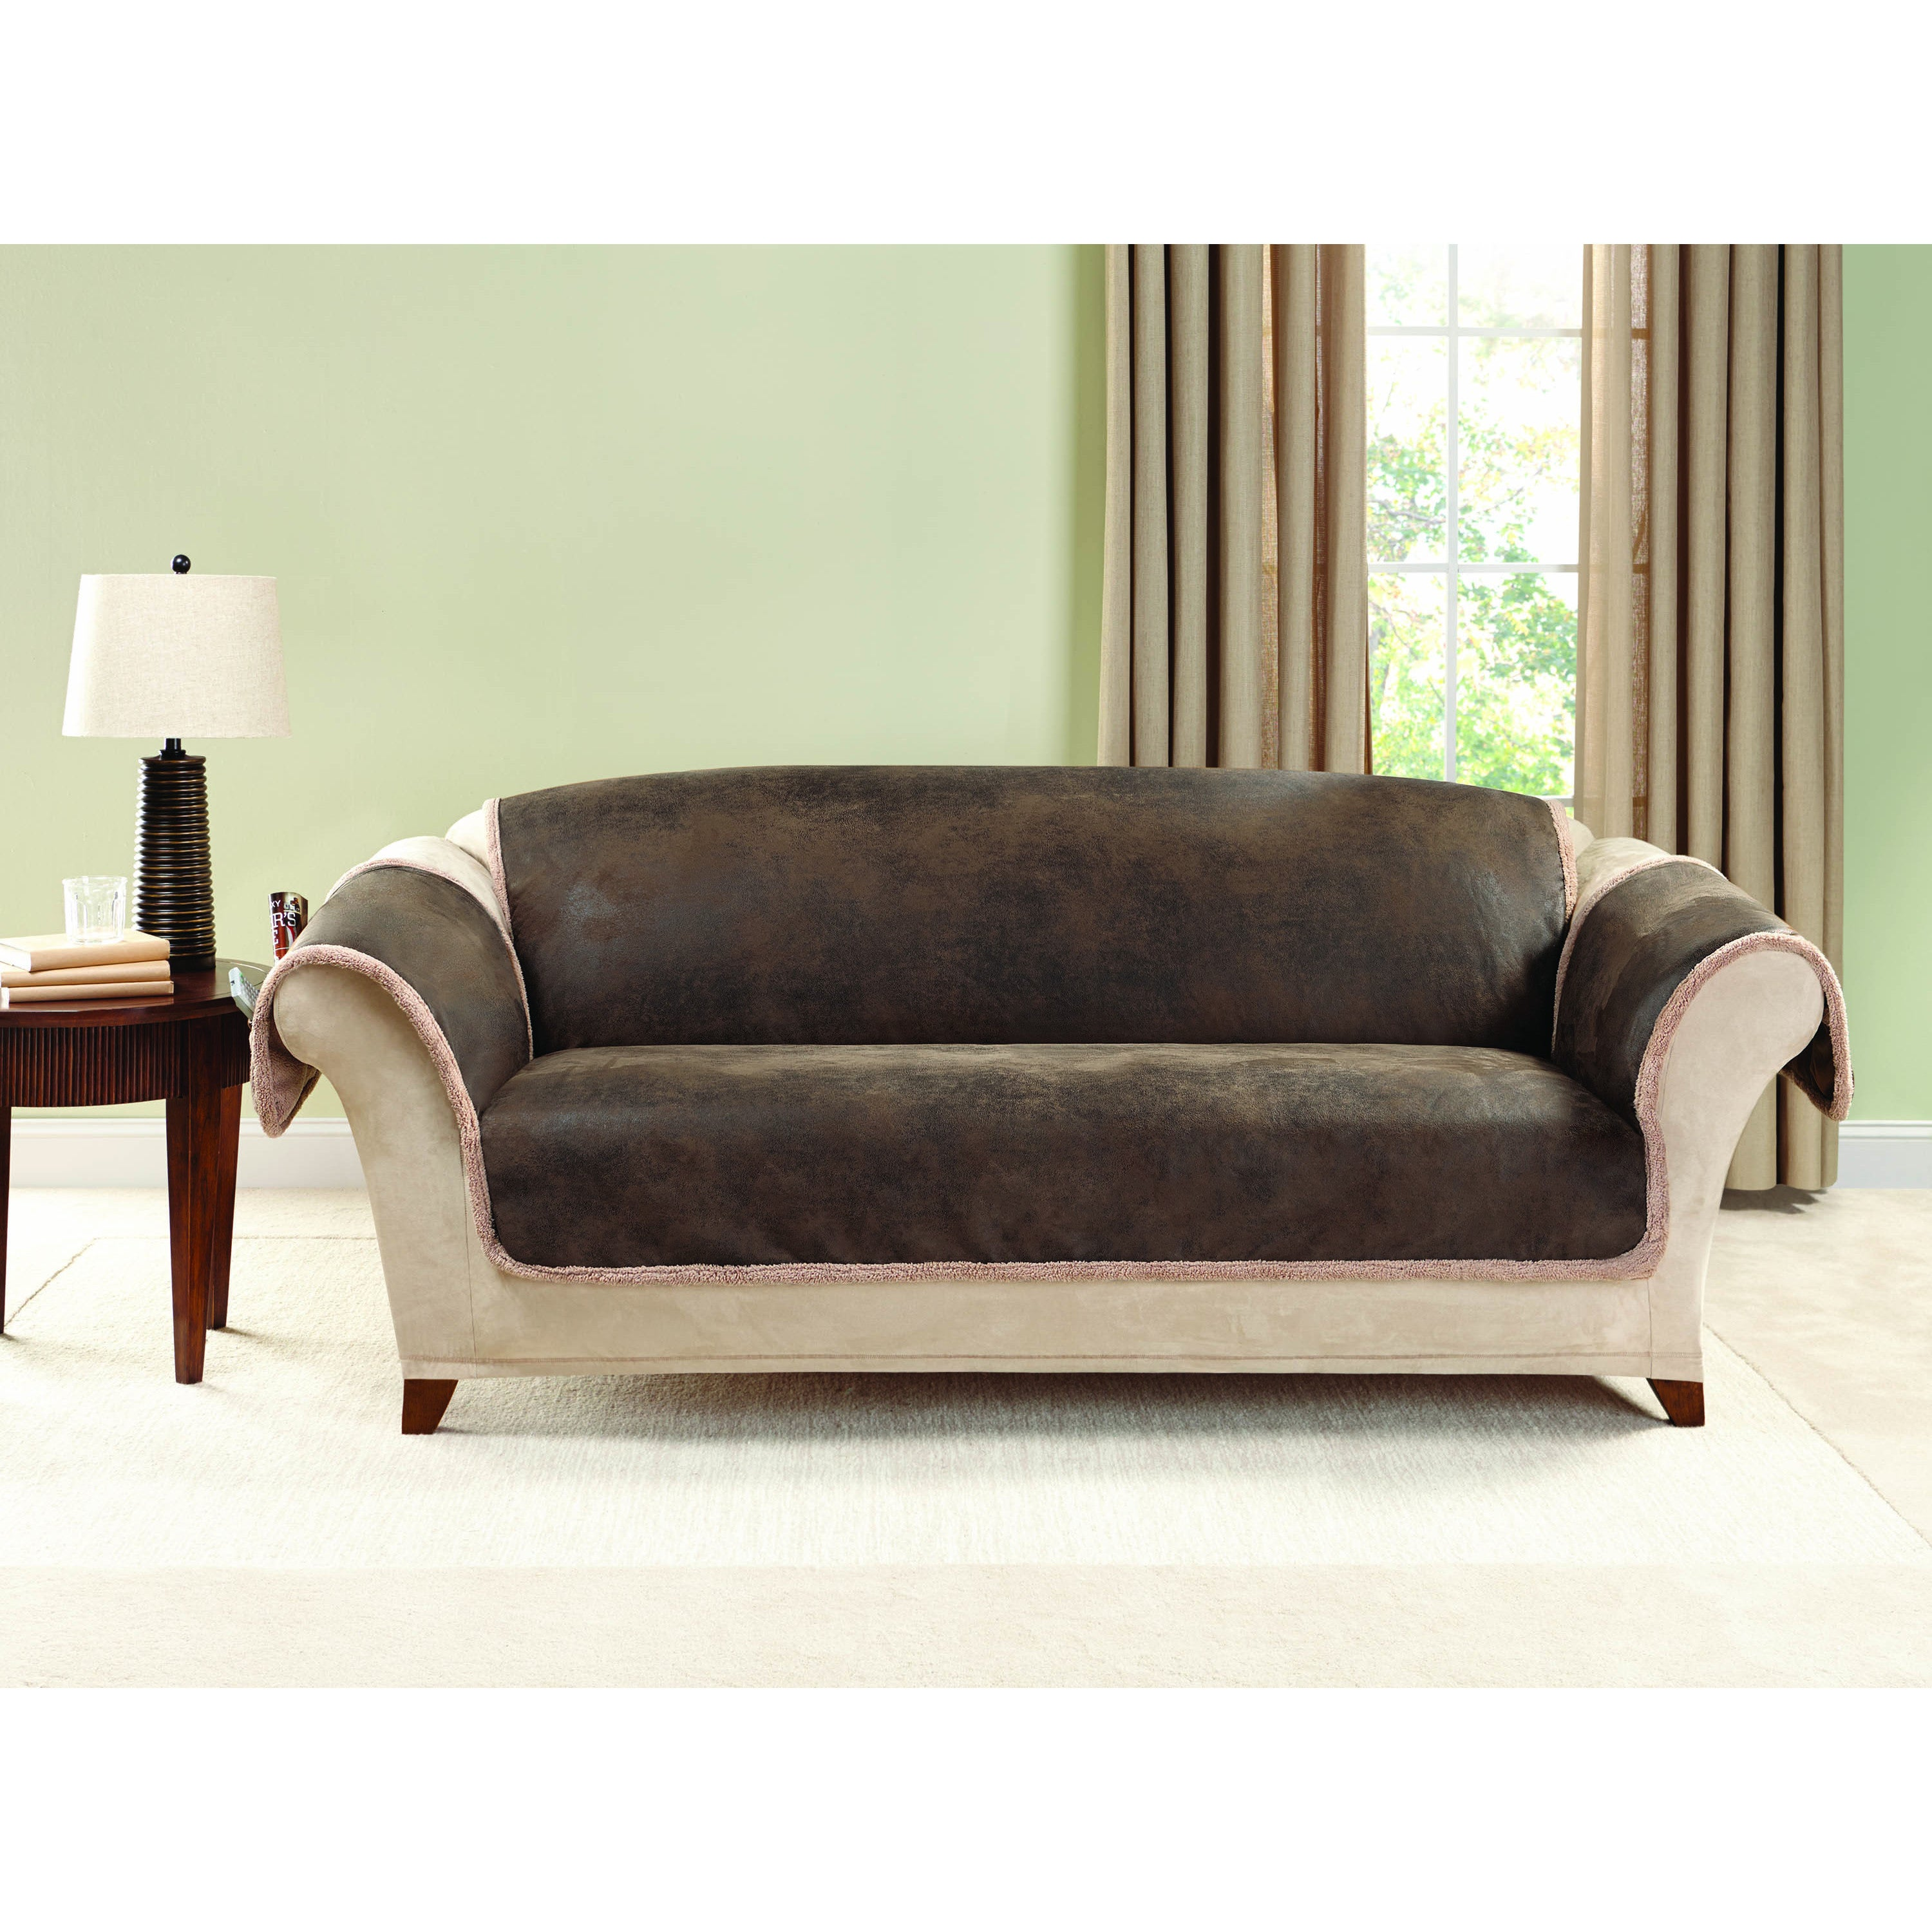 Sure Fit Vintage Leather Sofa Furniture Protector On Free Shipping Today 10977989